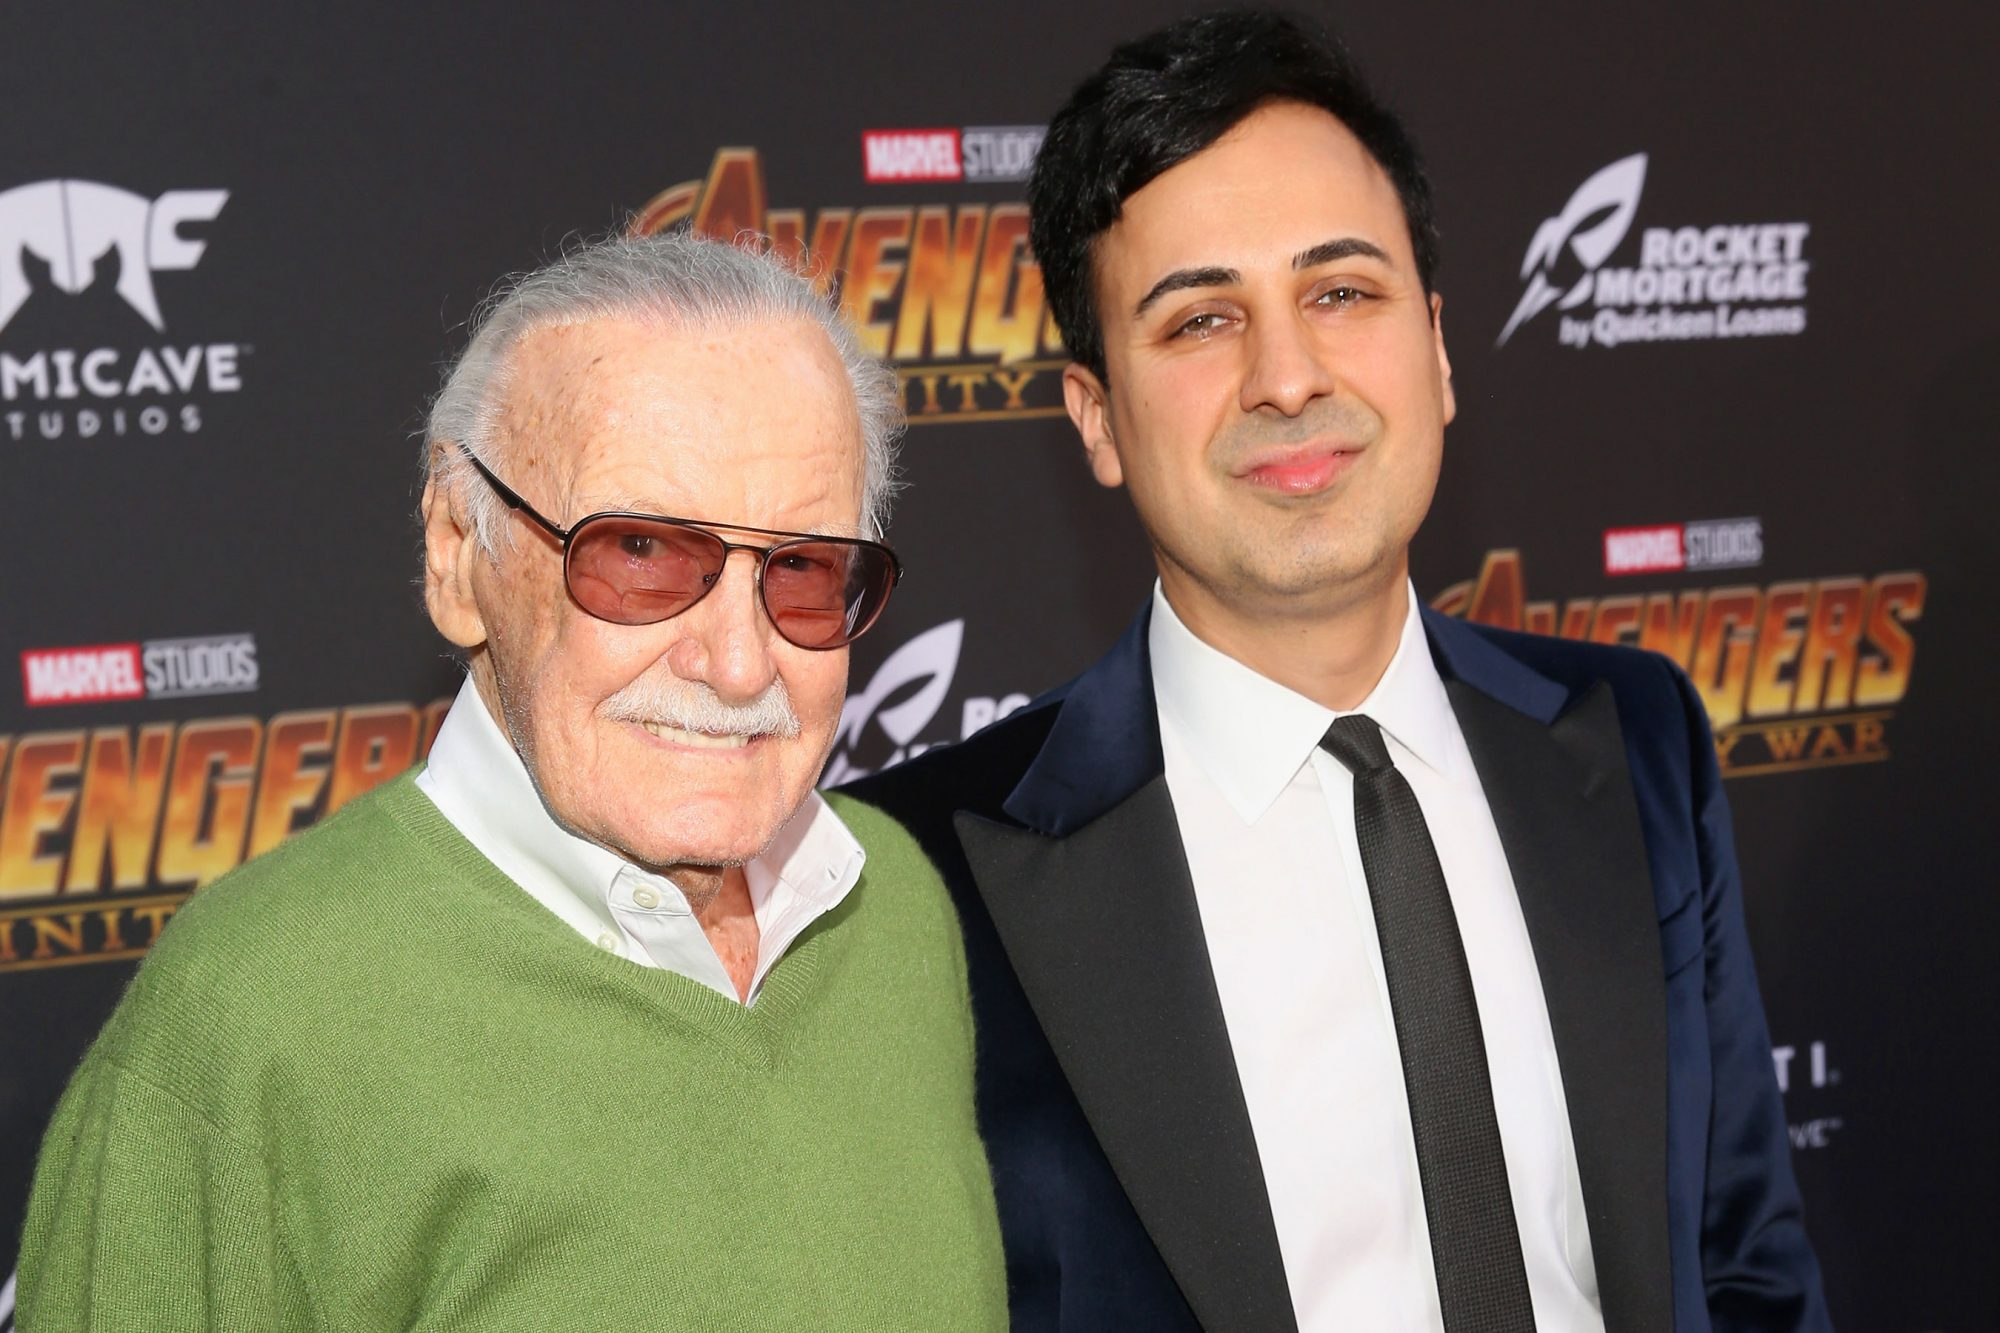 HOLLYWOOD, CA - APRIL 23: Stan Lee and Keya Morgan attends the Los Angeles Global Premiere for Marvel Studios? Avengers: Infinity War on April 23, 2018 in Hollywood, California. (Photo by Jesse Grant/Getty Images for Disney)